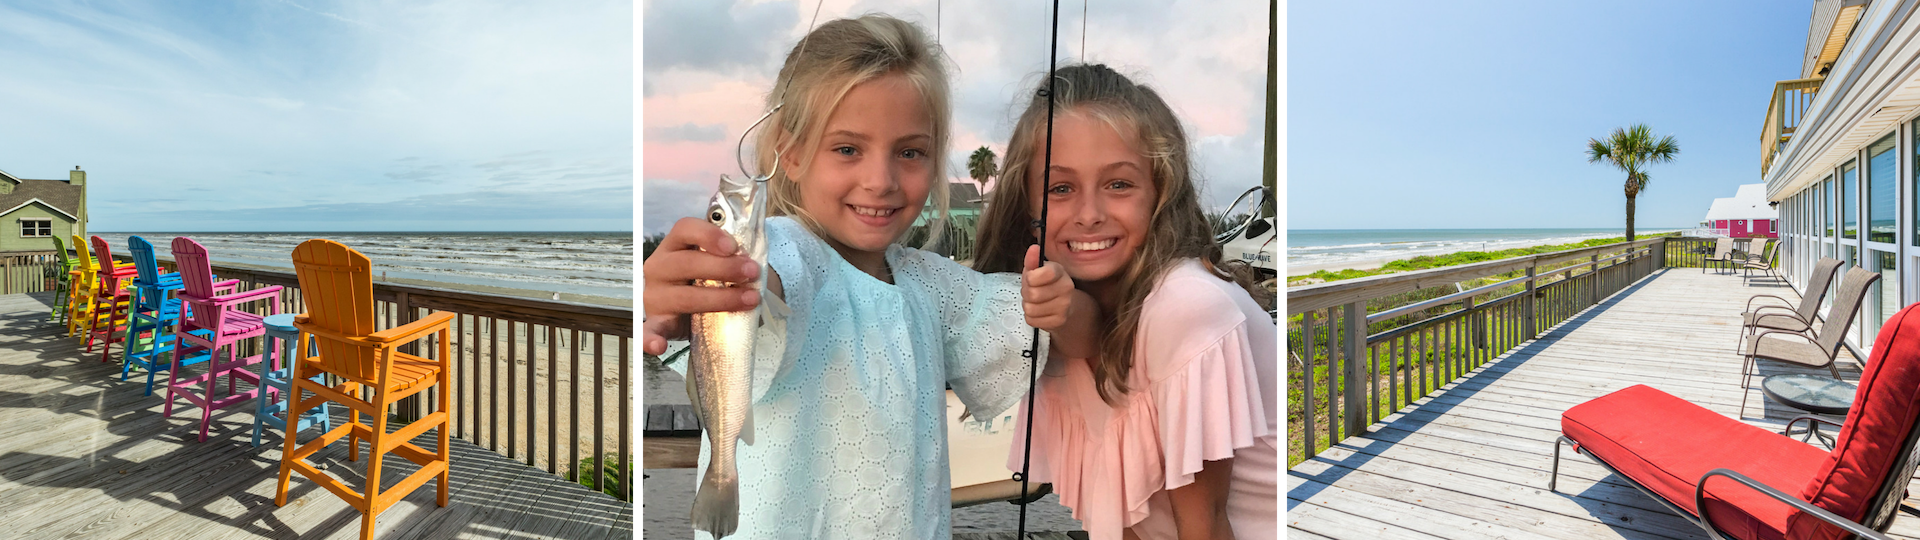 Beachfront decks, Fun for the Family, Great fishing